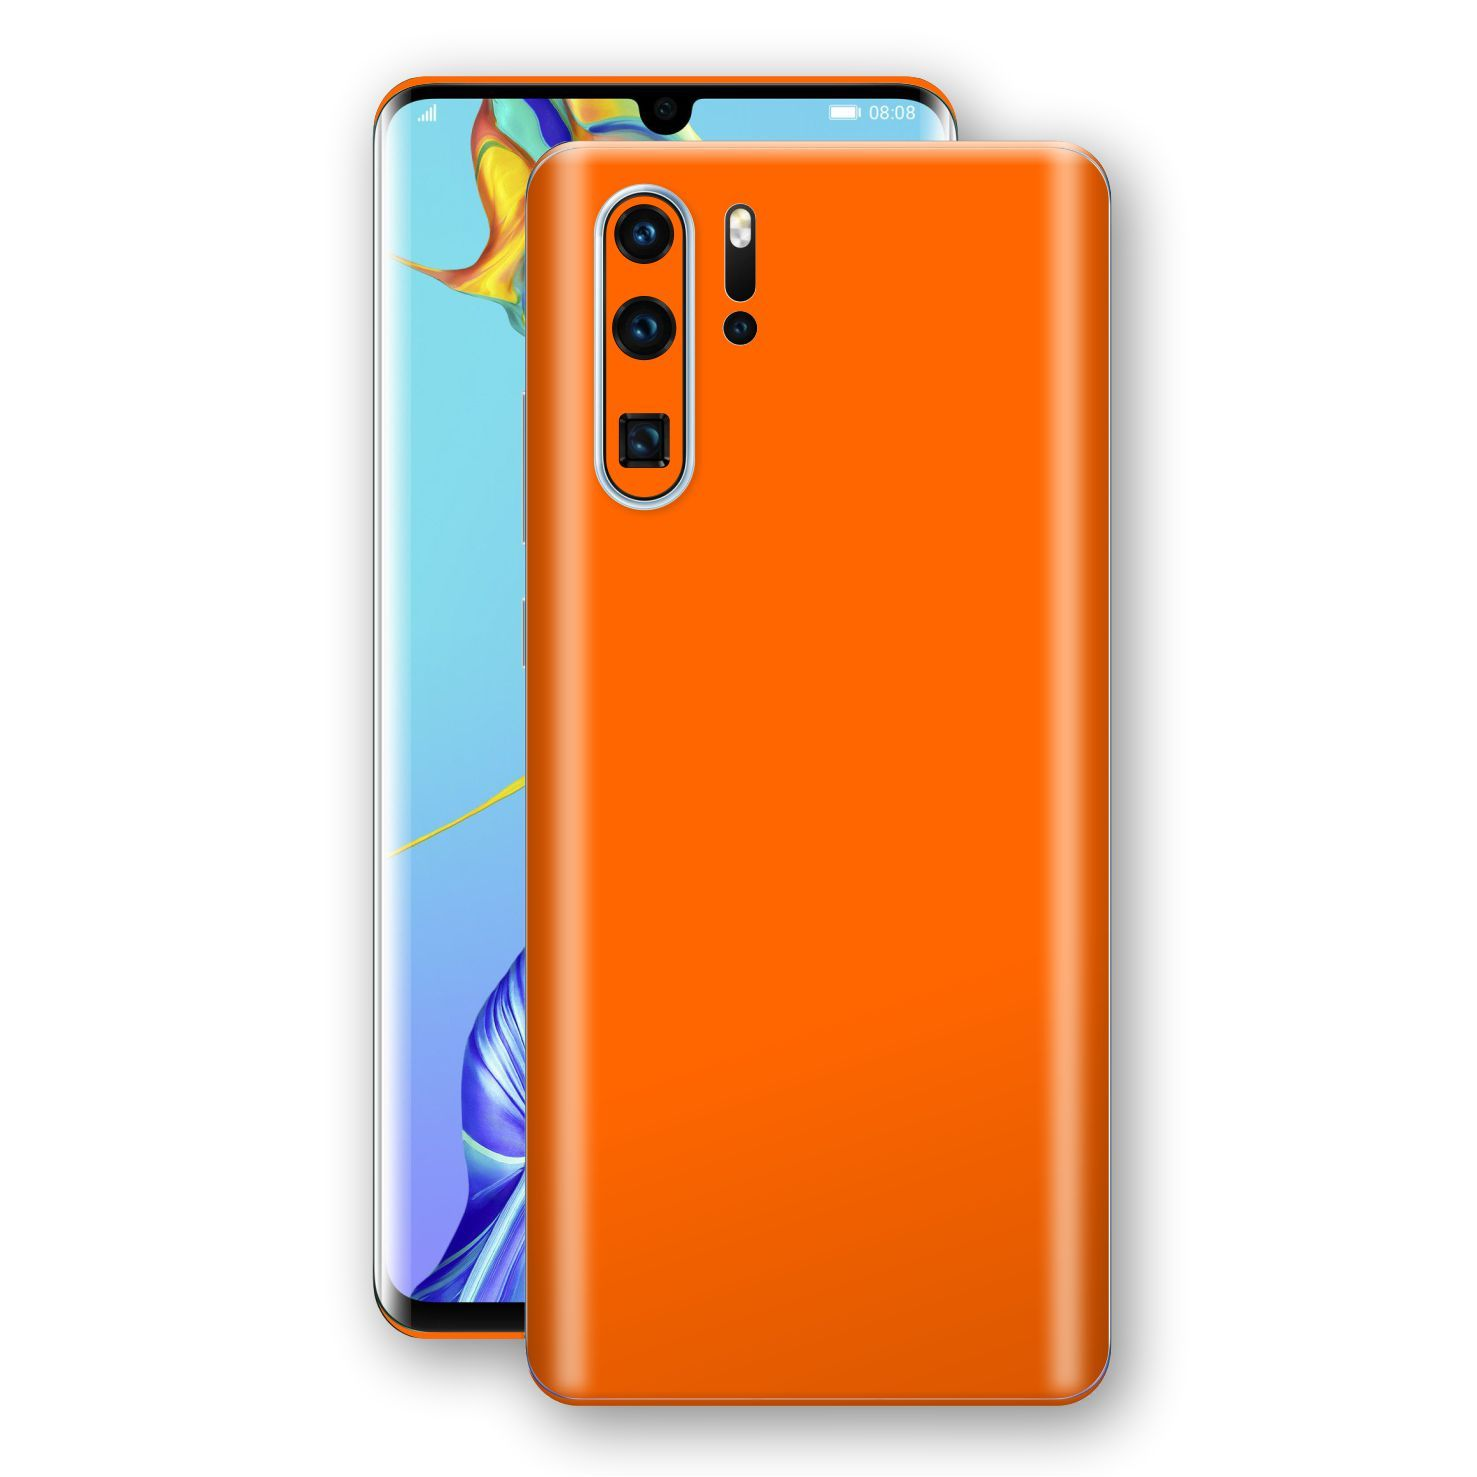 Huawei P30 PRO Orange Glossy Gloss Finish Skin, Decal, Wrap, Protector, Cover by EasySkinz | EasySkinz.com